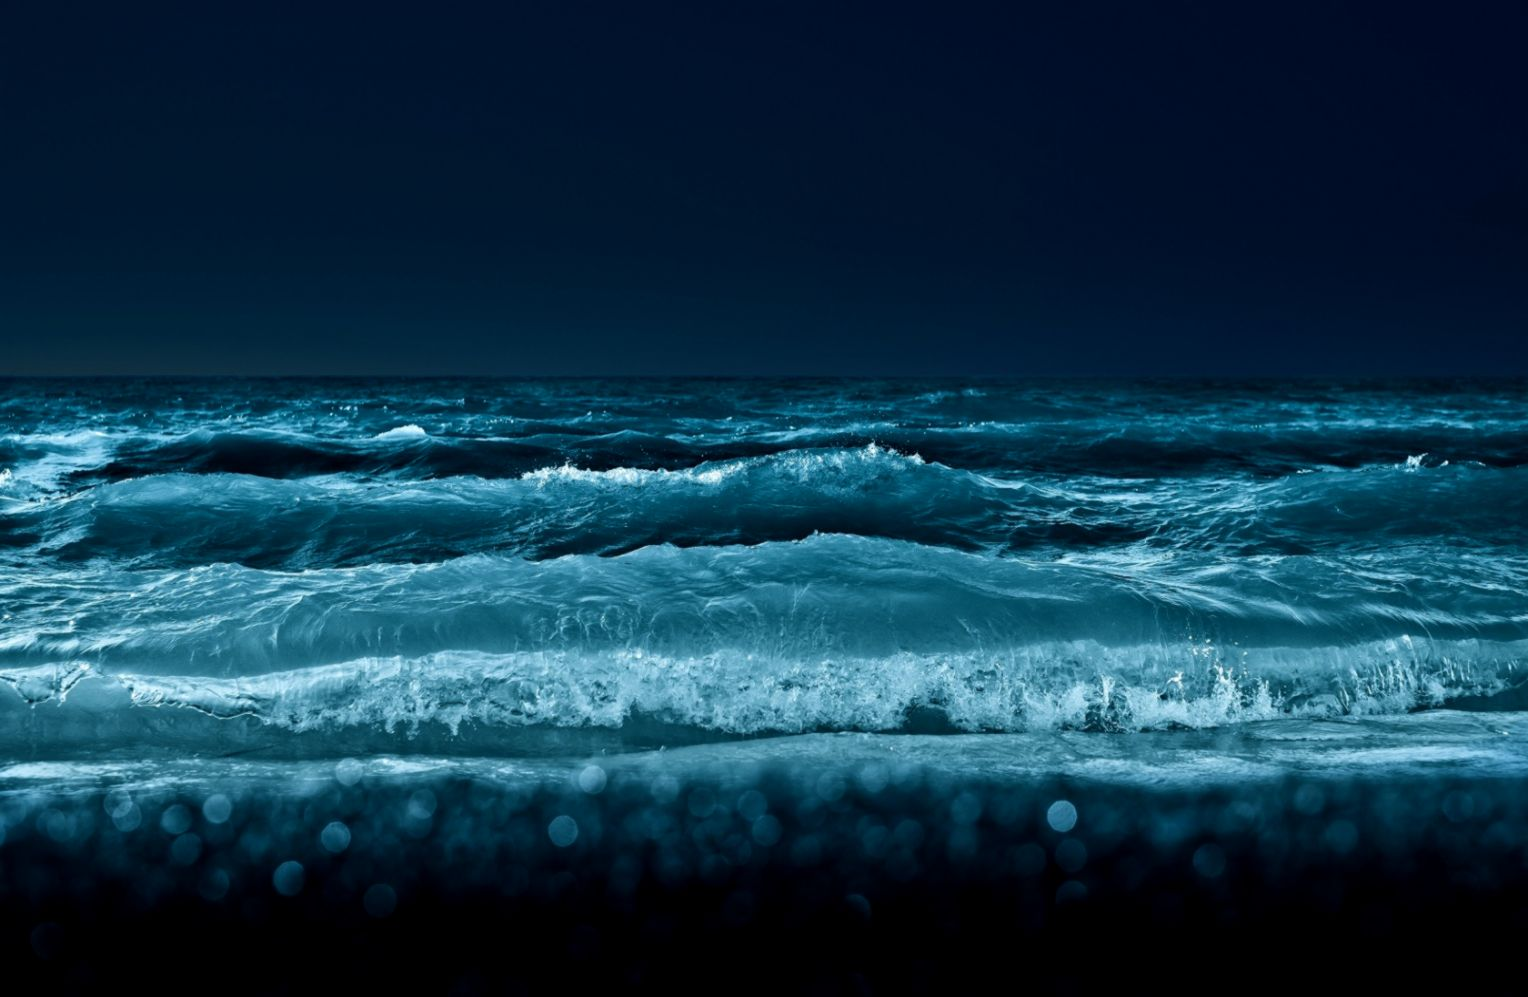 1680x1050 Ocean Waves at Night Wallpaper